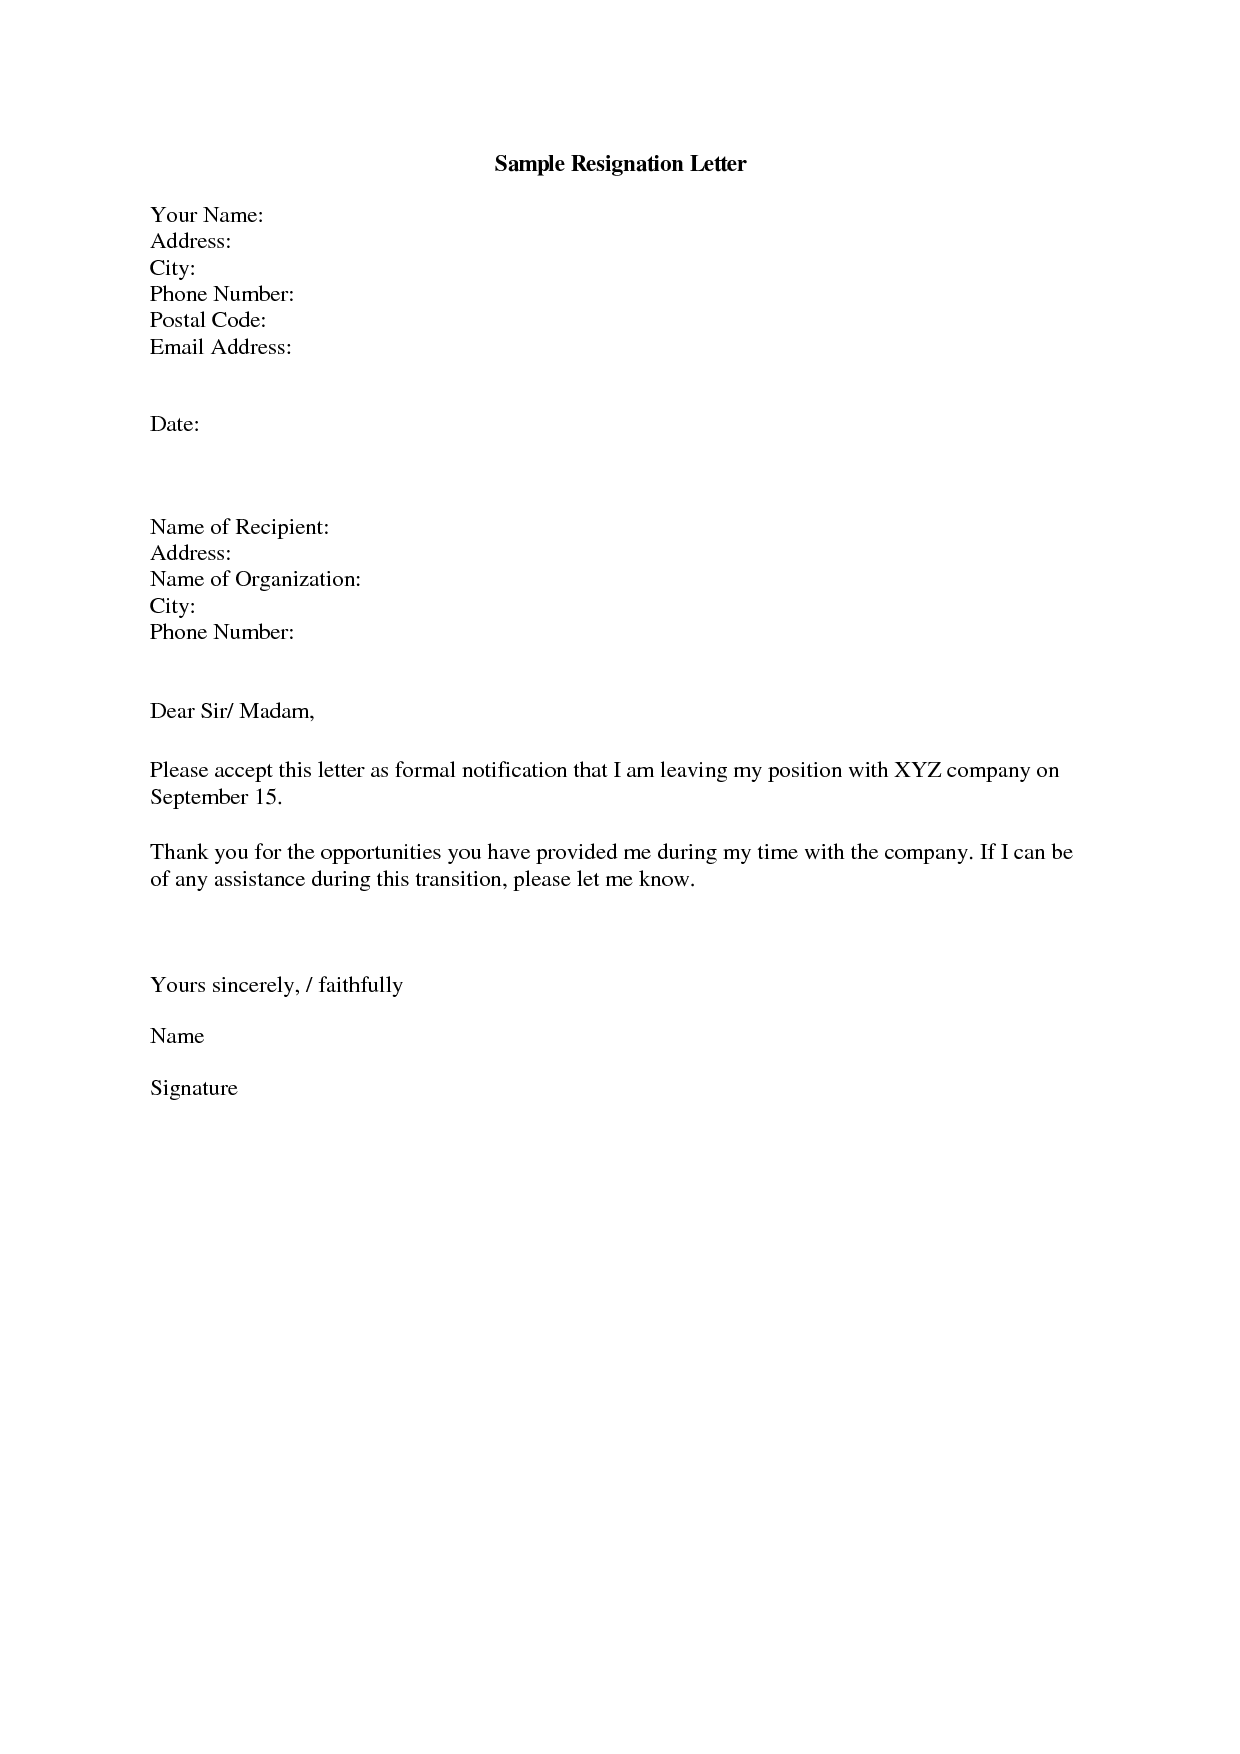 Sample Of Resignation Letter For Company Resignation Letter Format